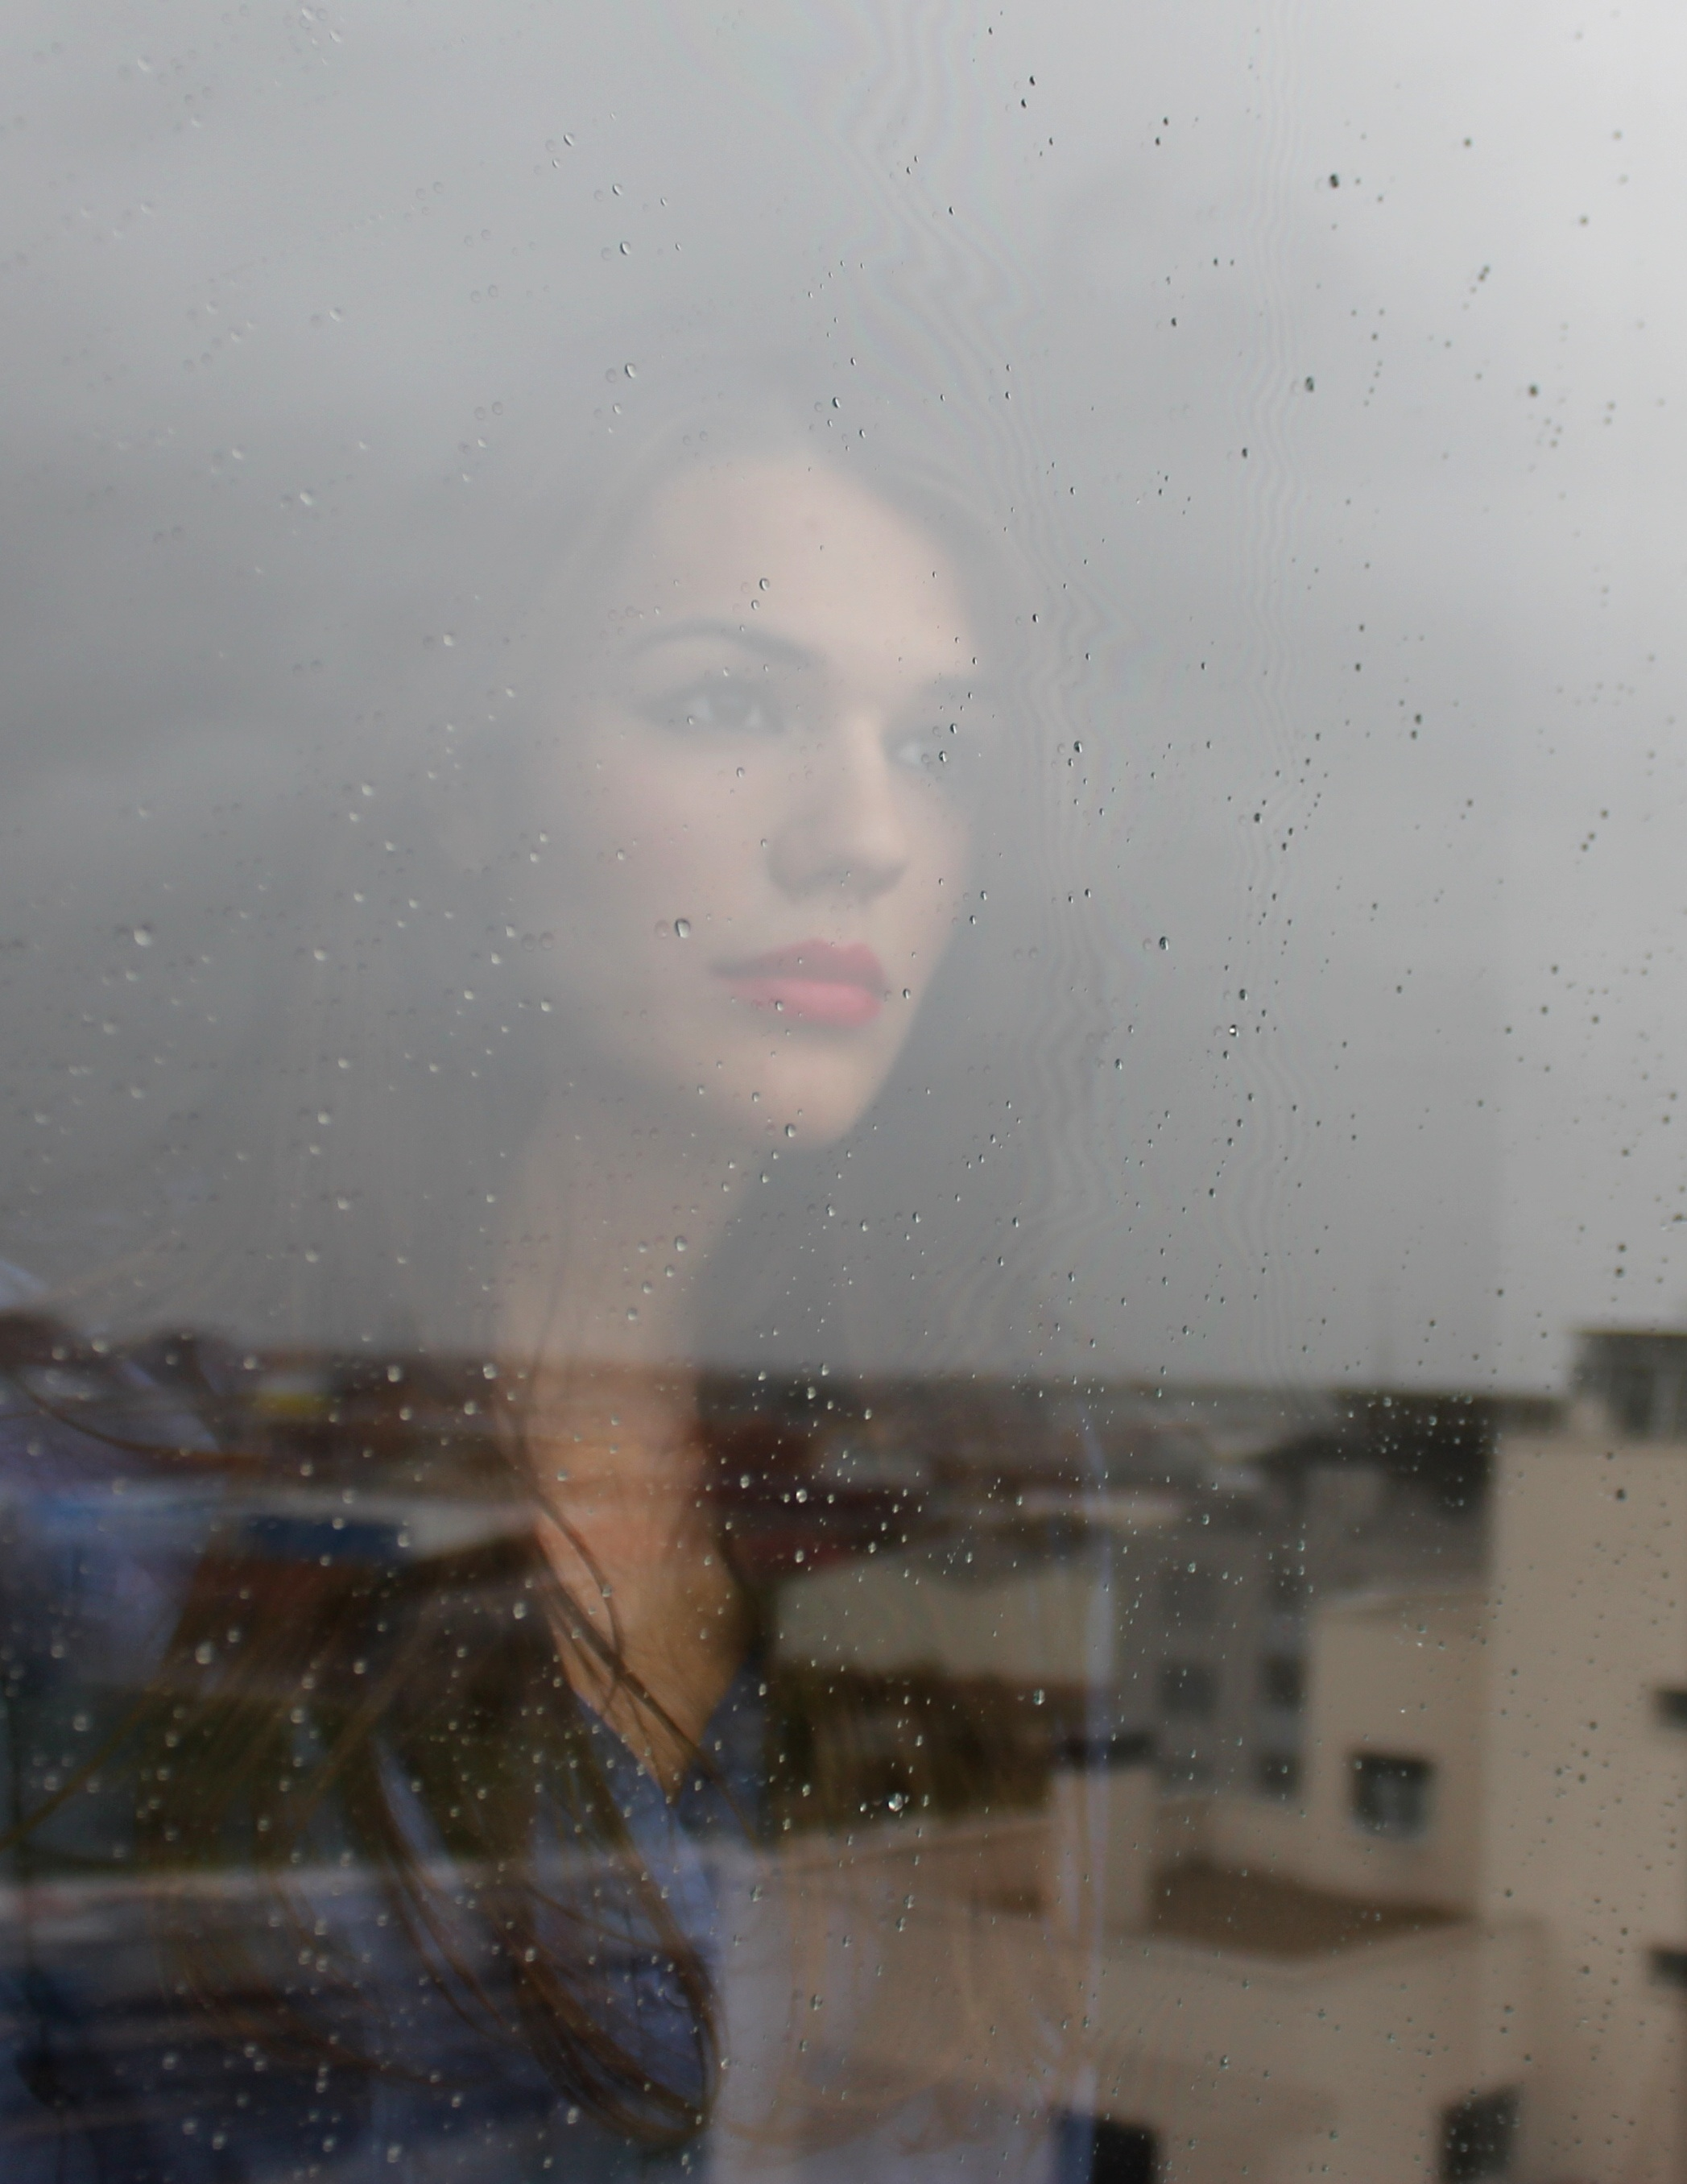 sad-woman-looking-out-the-window-in-the-rain